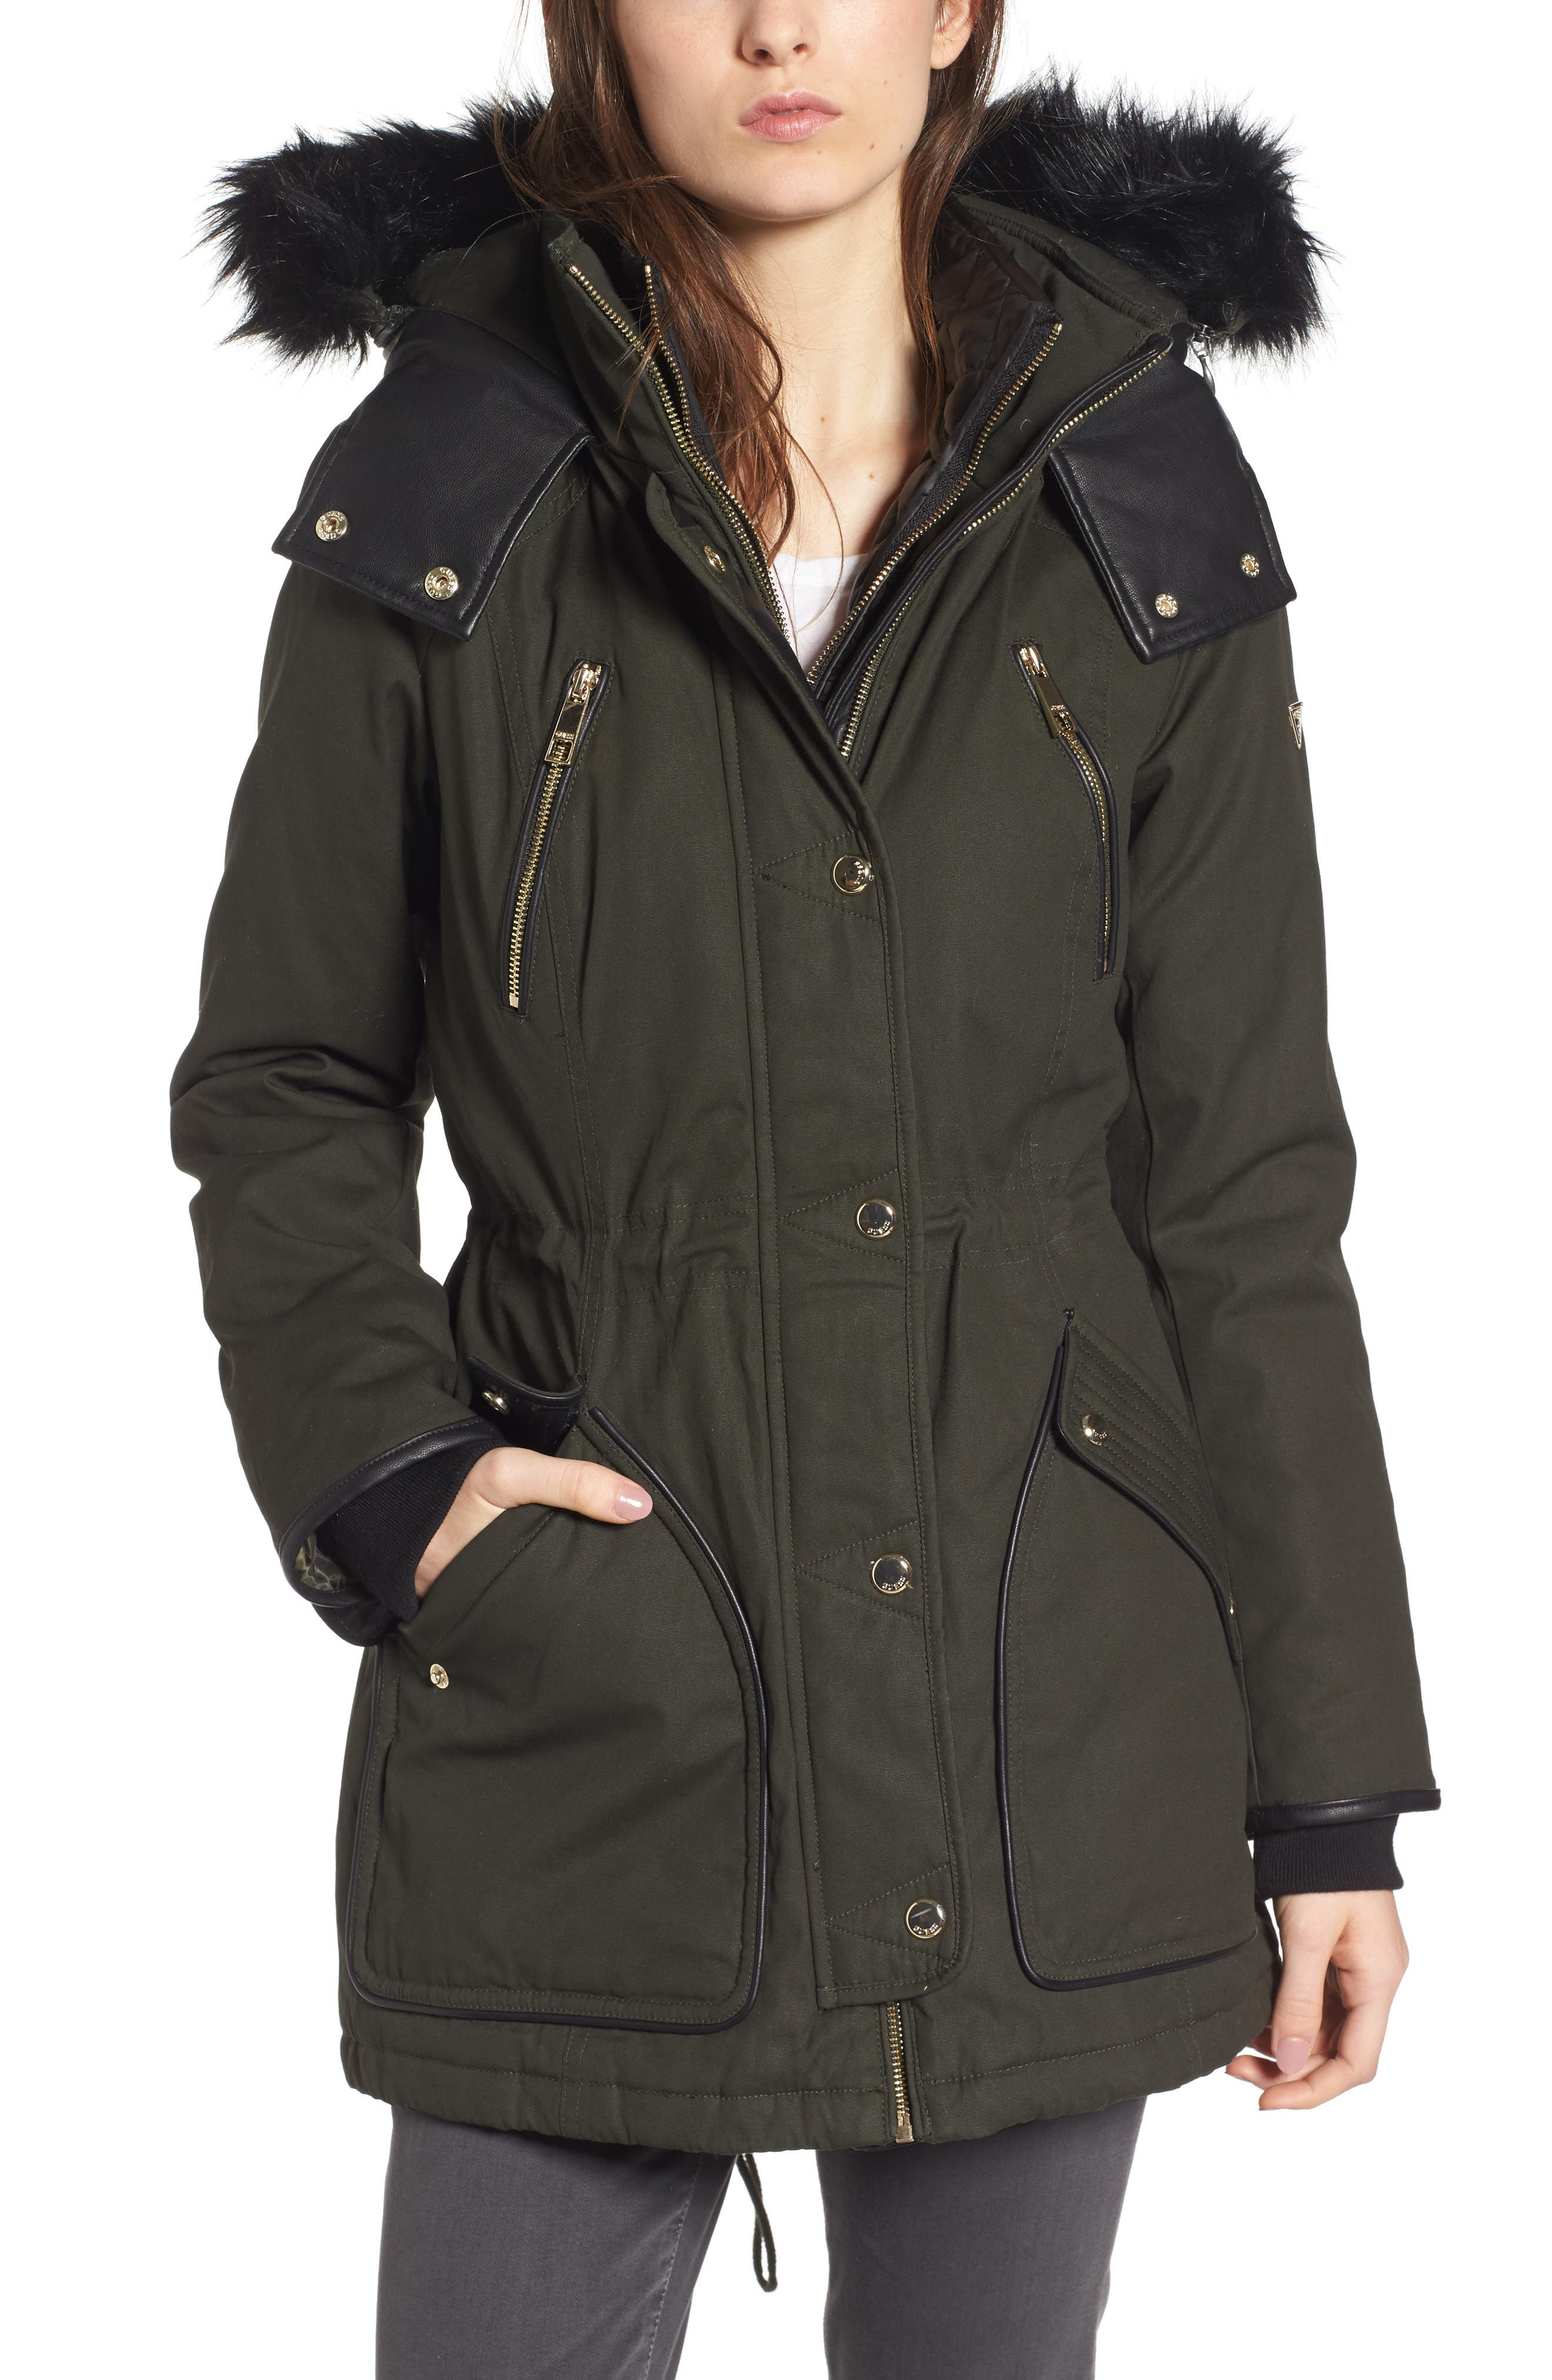 Hooded Anorak with Detachable Faux Fur,                             Main thumbnail 1, color,                             Dark Olive